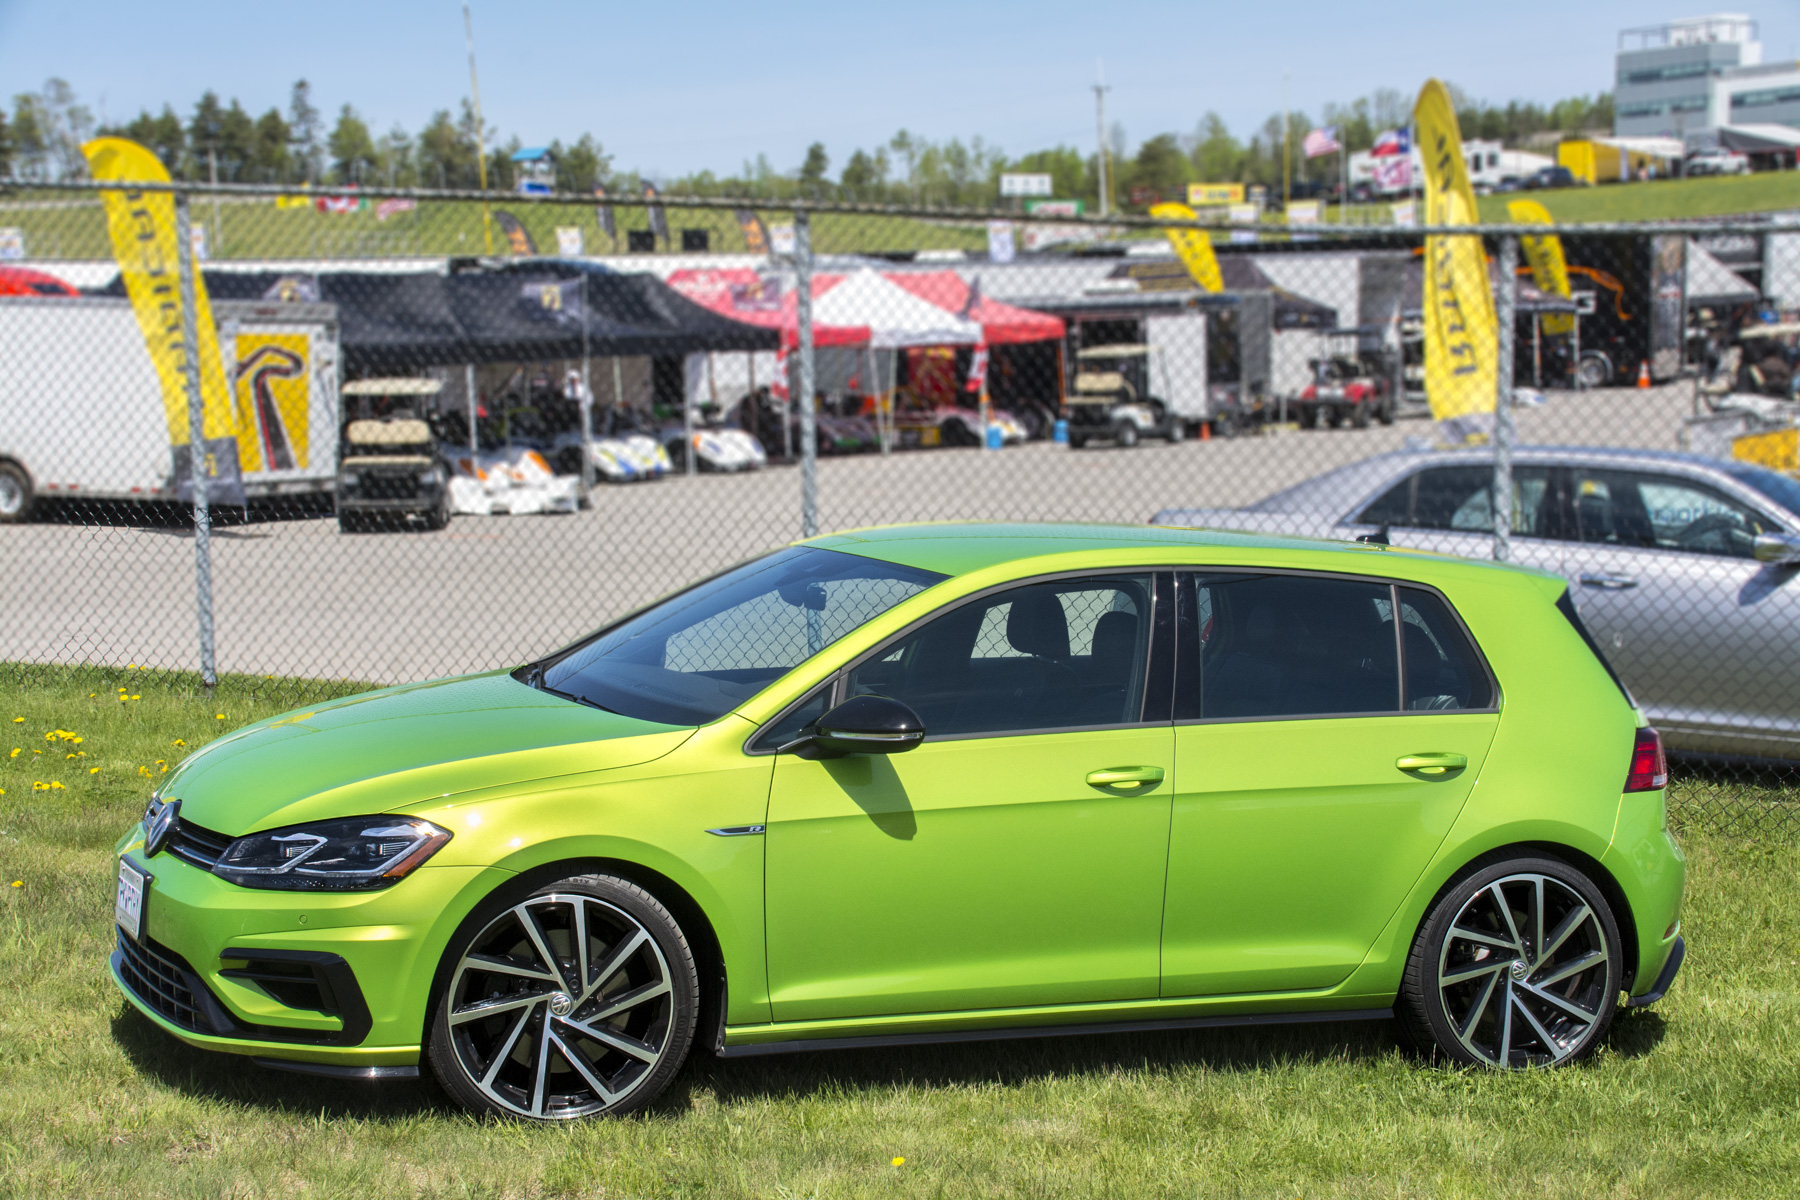 2018 Volkswagen Golf R (89)